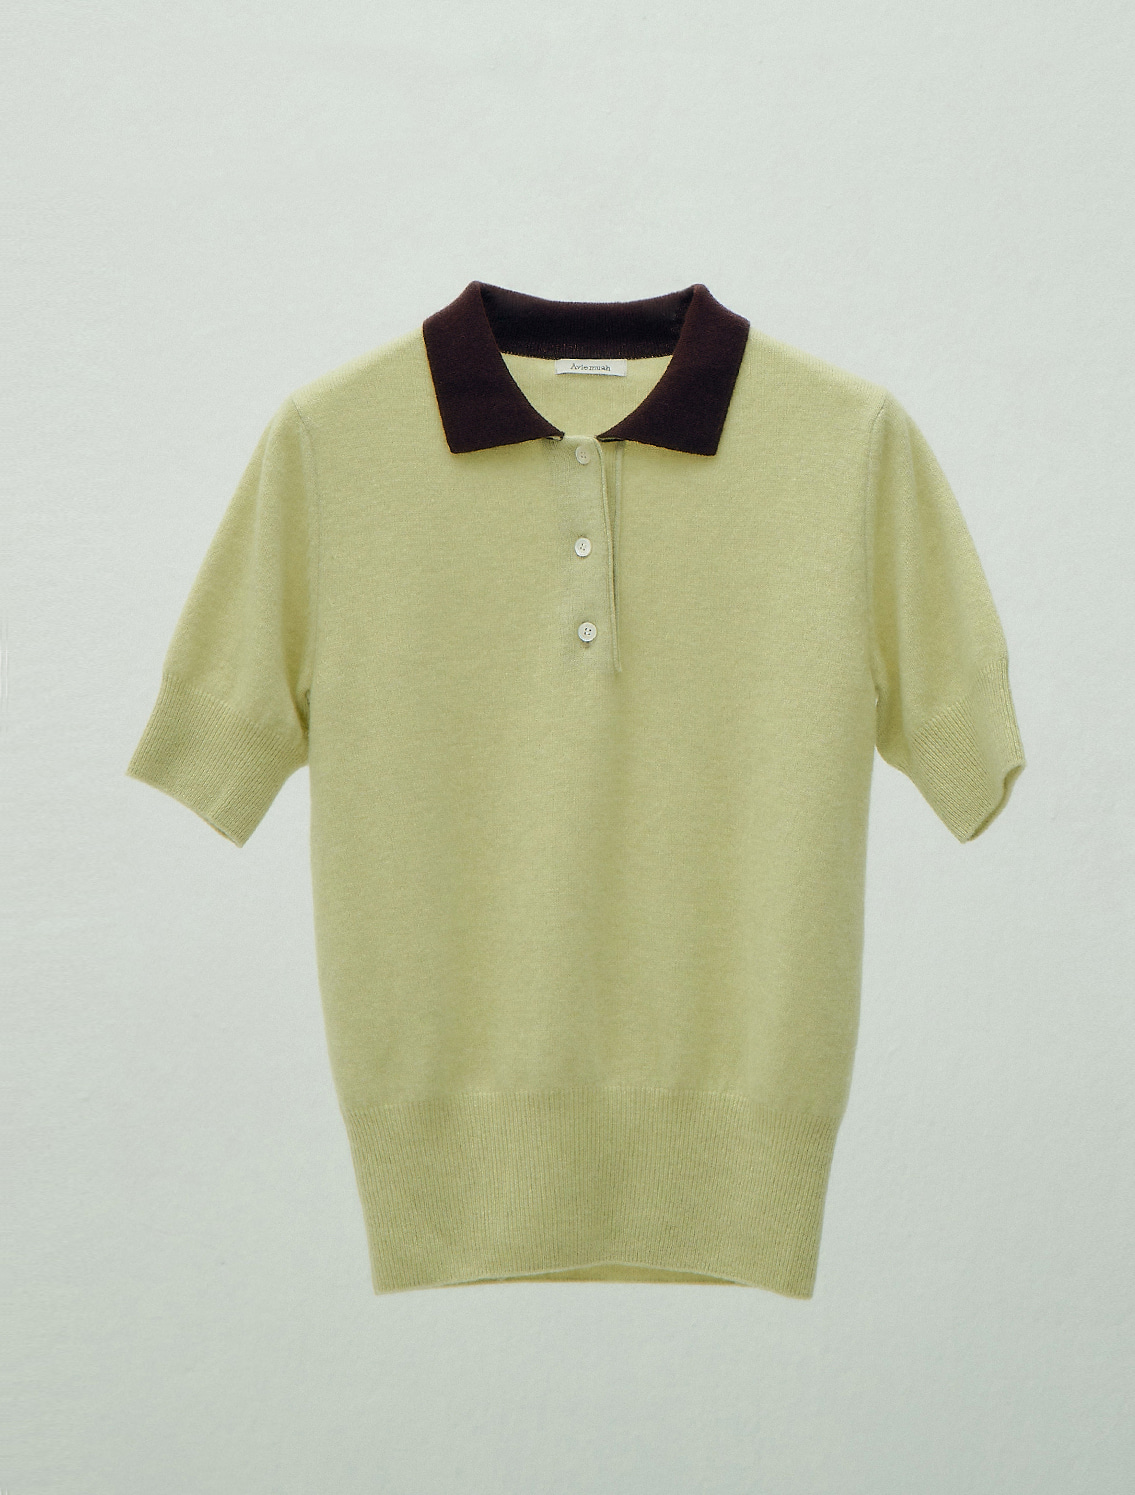 Two-Tone Cashmere Polo Shirt (Green)